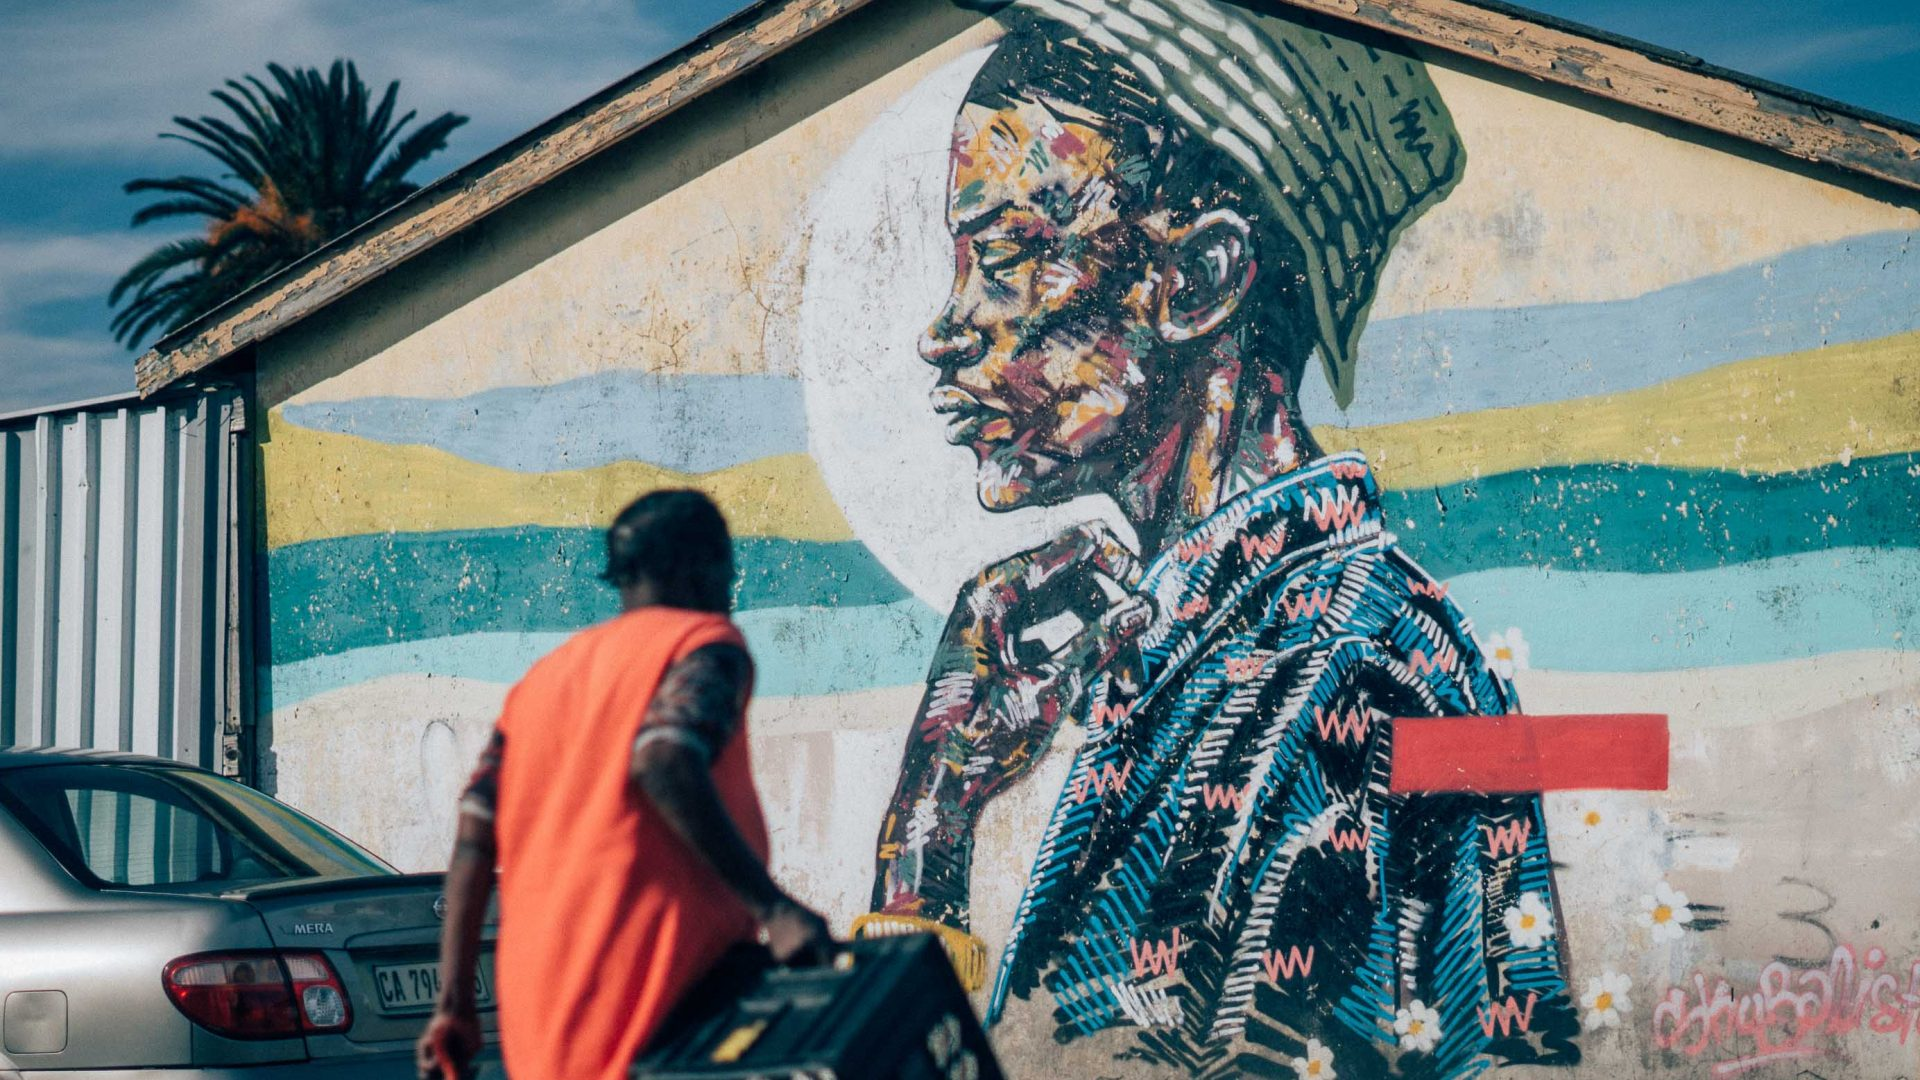 Meet the Cape Town graffiti artists helping transform their township